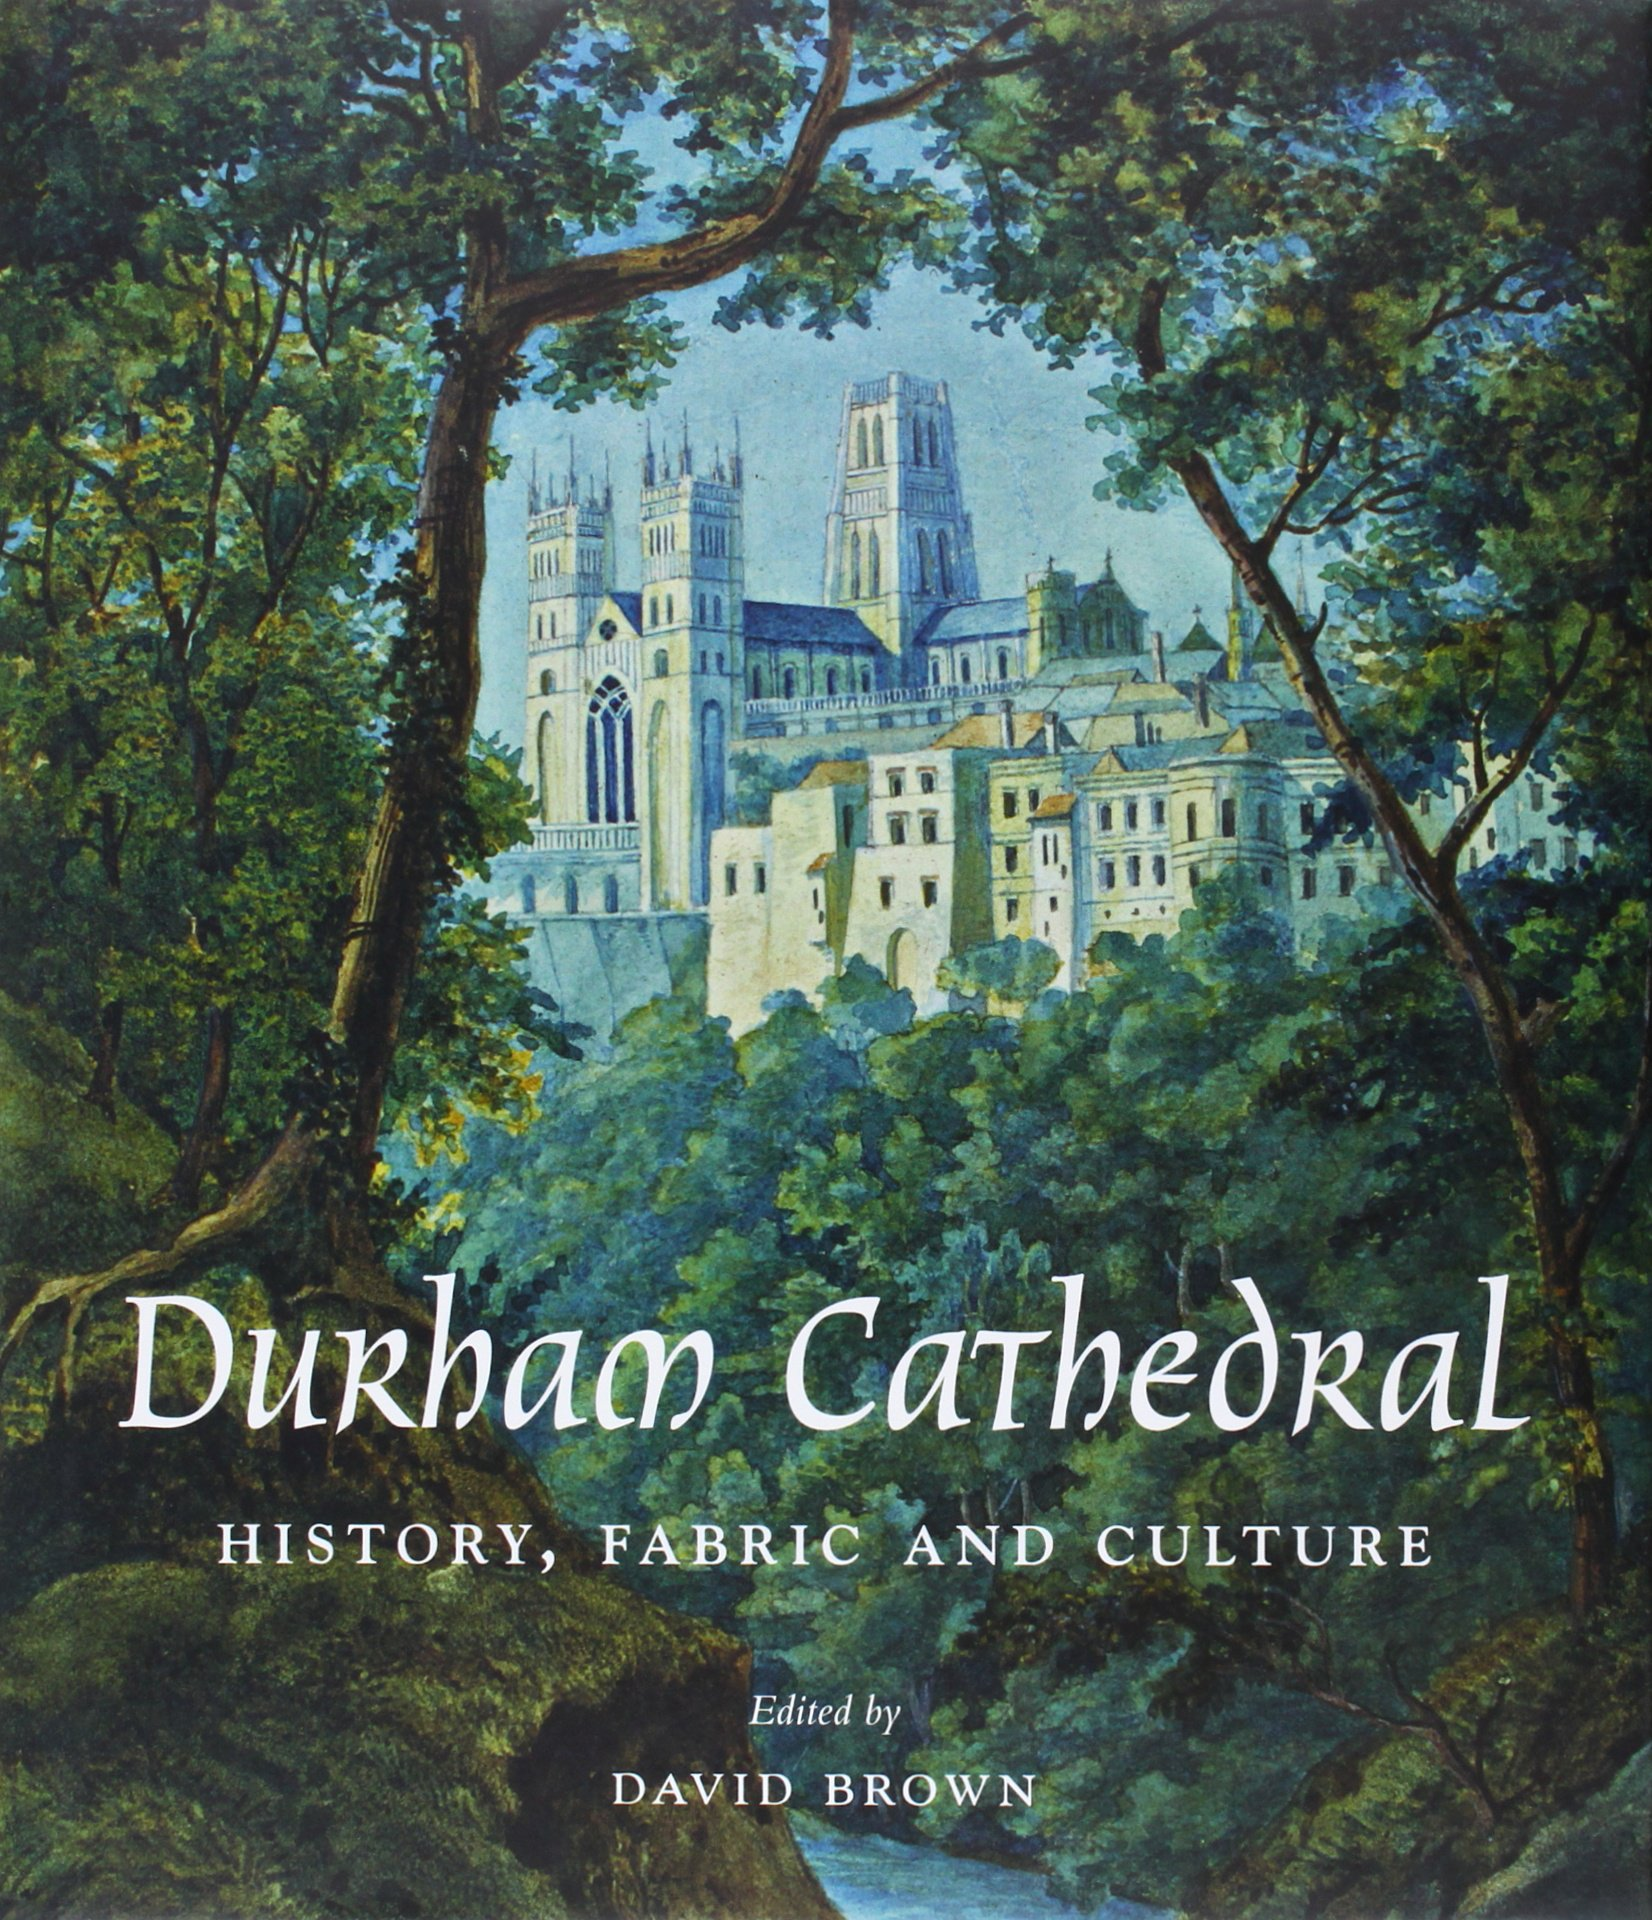 Download Durham Cathedral: History, Fabric, and Culture (Paul Mellon Centre for Studies in British Art) pdf